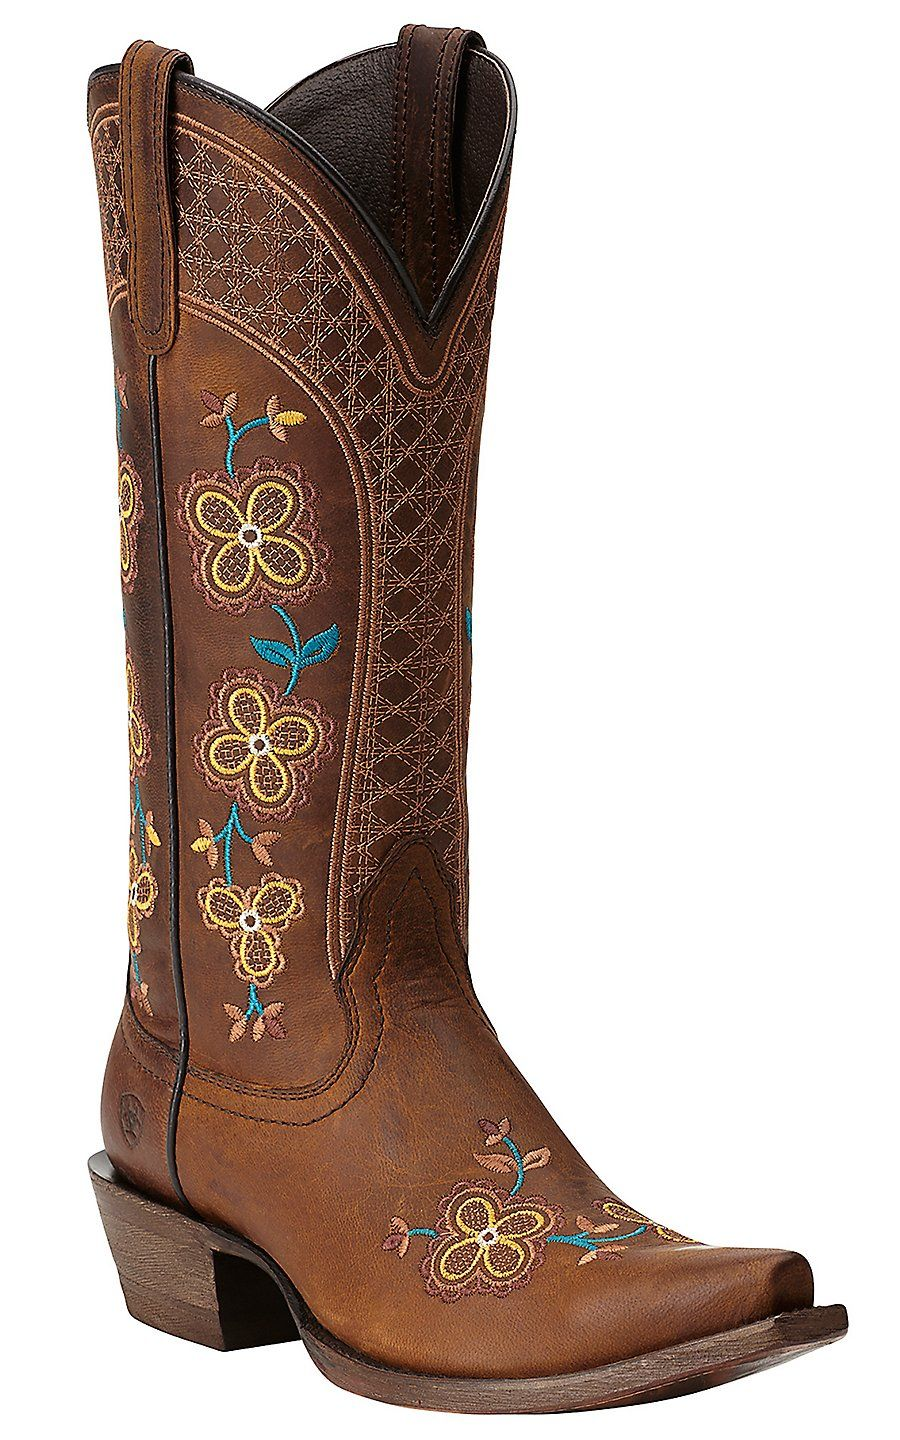 Ariat New West Women S Sundance Weathered Brown With Floral Embroidery Snip Toe Cowboy Boots Boots Cowgirl Boots Shoe Boots